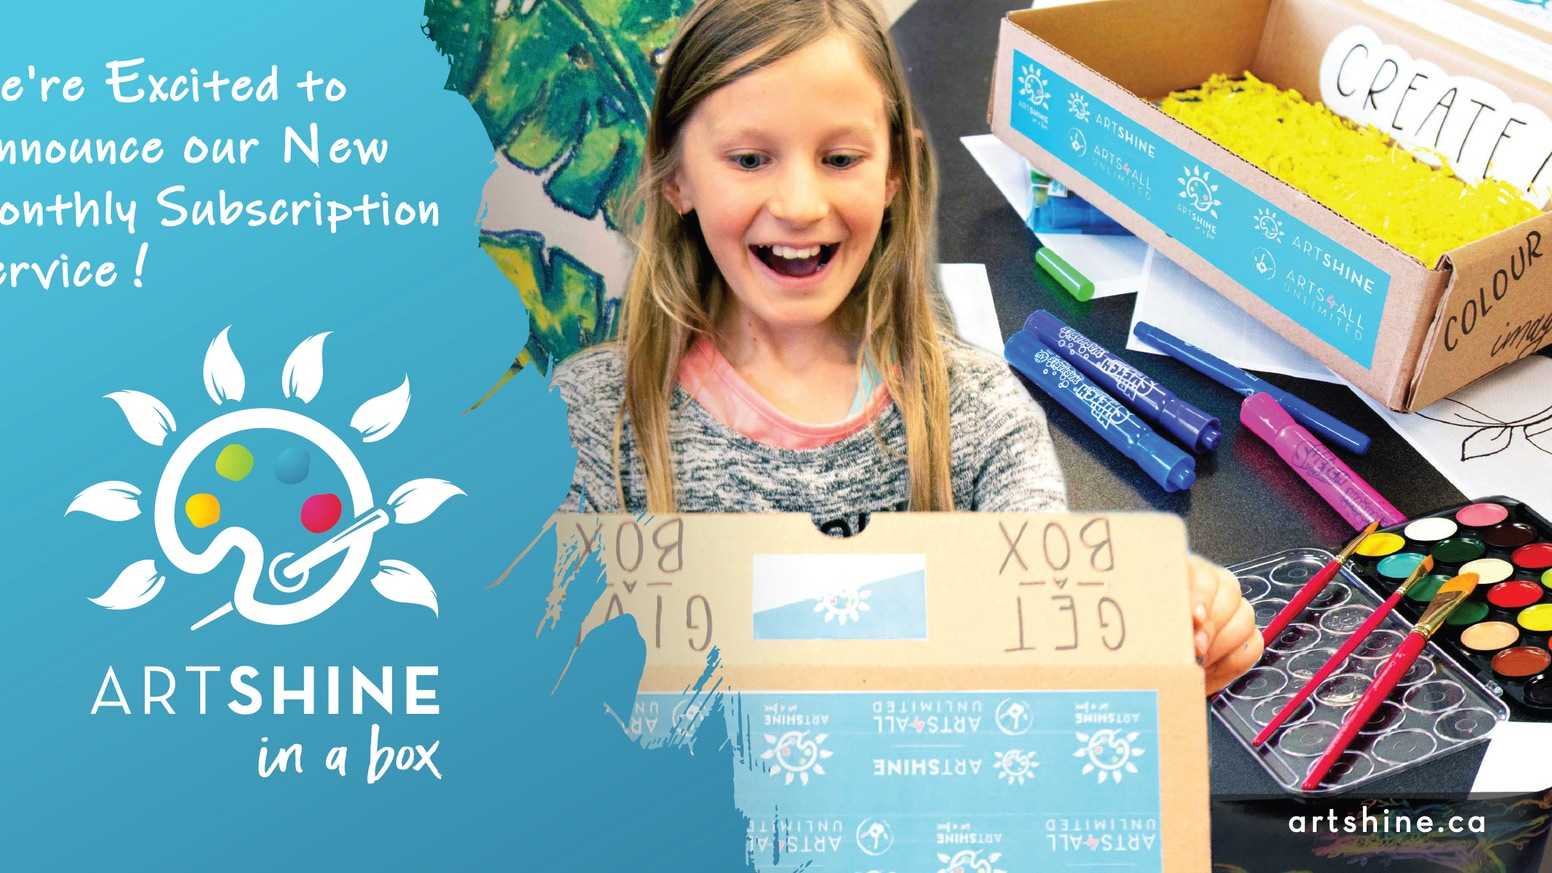 Artshine in a Box is a kids art subscription offered in English and French. We give away a free art lesson for every kit purchased!